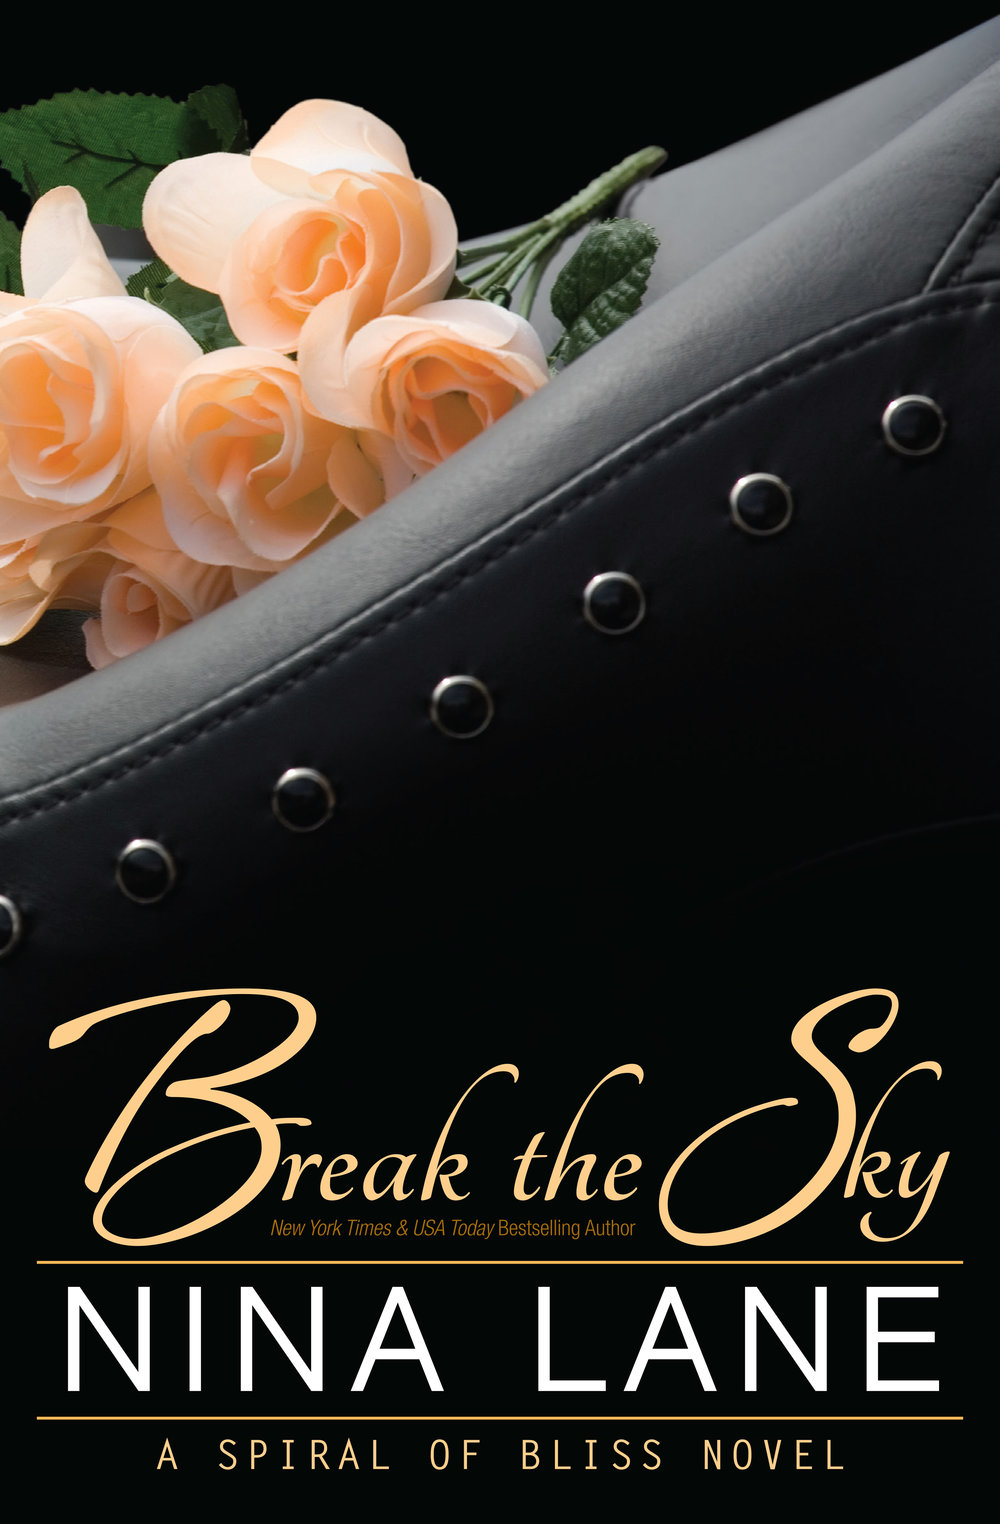 SOB_5_BREAKTHESKY_FrontCovers_Object_10917_Kindle.jpg